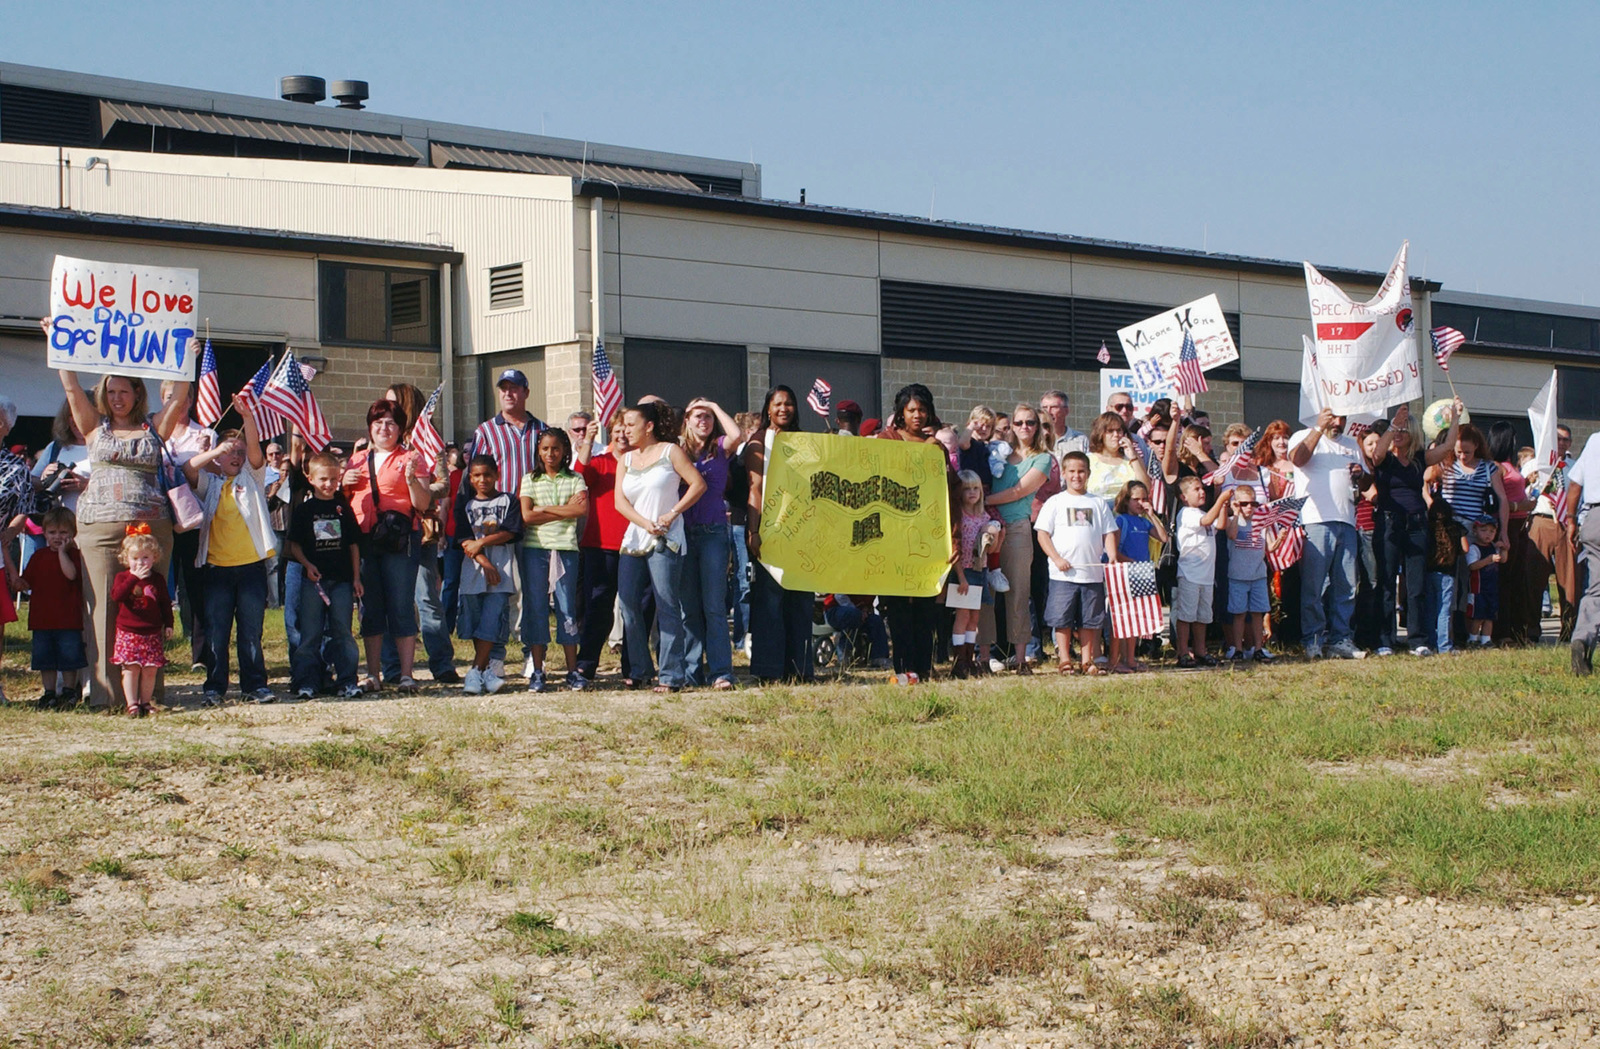 Friends and family members of the redeploying 1ST Squadron, 17th Cavalry Regiment (1/17th CAV), 82nd Airborne Division (ABN), gather near the flight line at the Green Ramp, Pope Air Force Base (AFB), North Carolina (NC), as the wait for their loved ones to disembark after their deployment to northern and central Iraq (IRQ) in support of Operation IRAQI FREEDOM